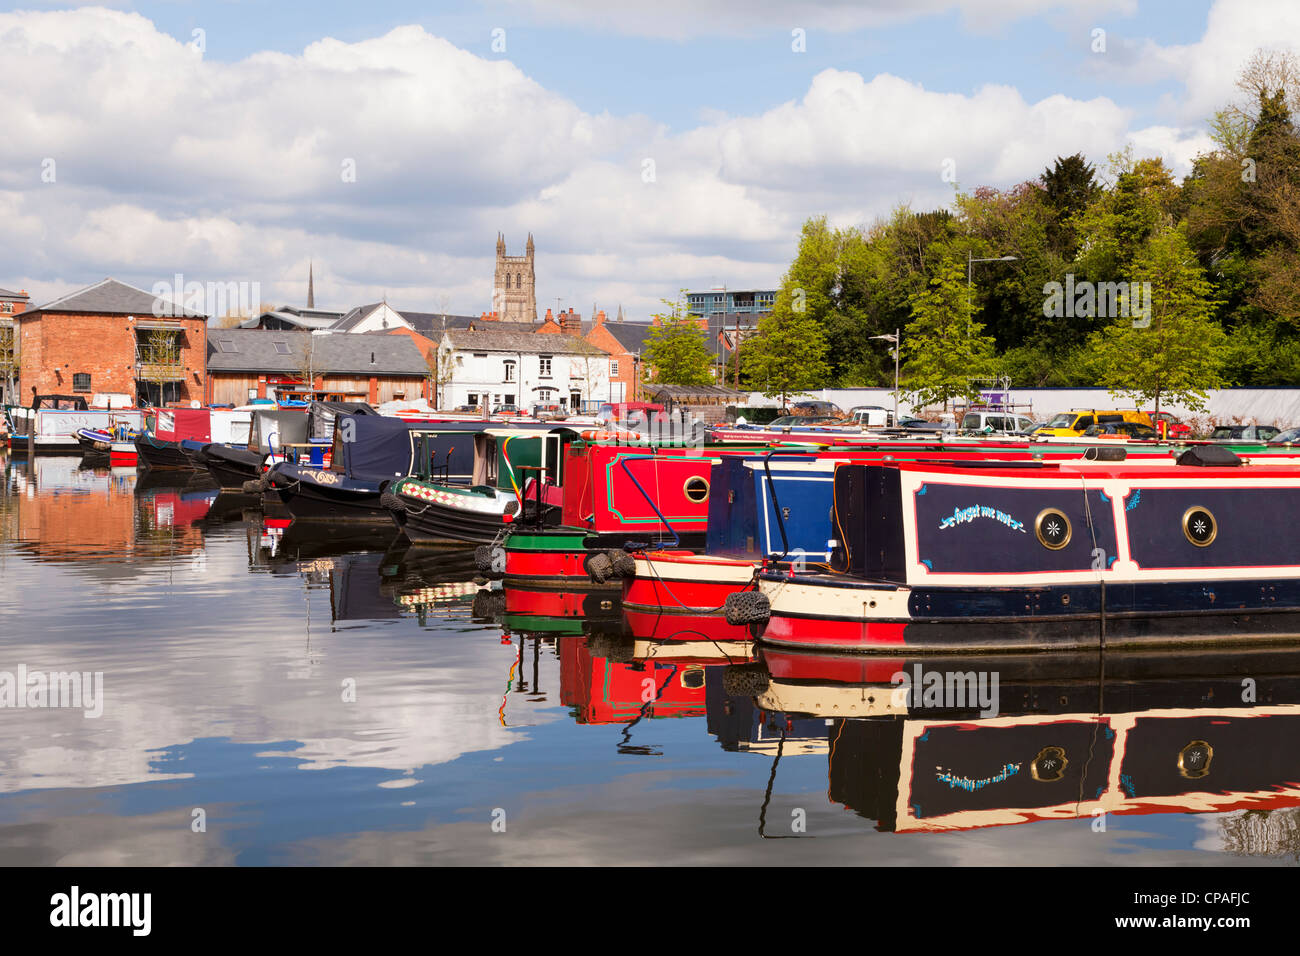 Narrowboats at Diglis Basin, Worcester, England, at the southern end of the Worcester Birmingham Canal, - Stock Image